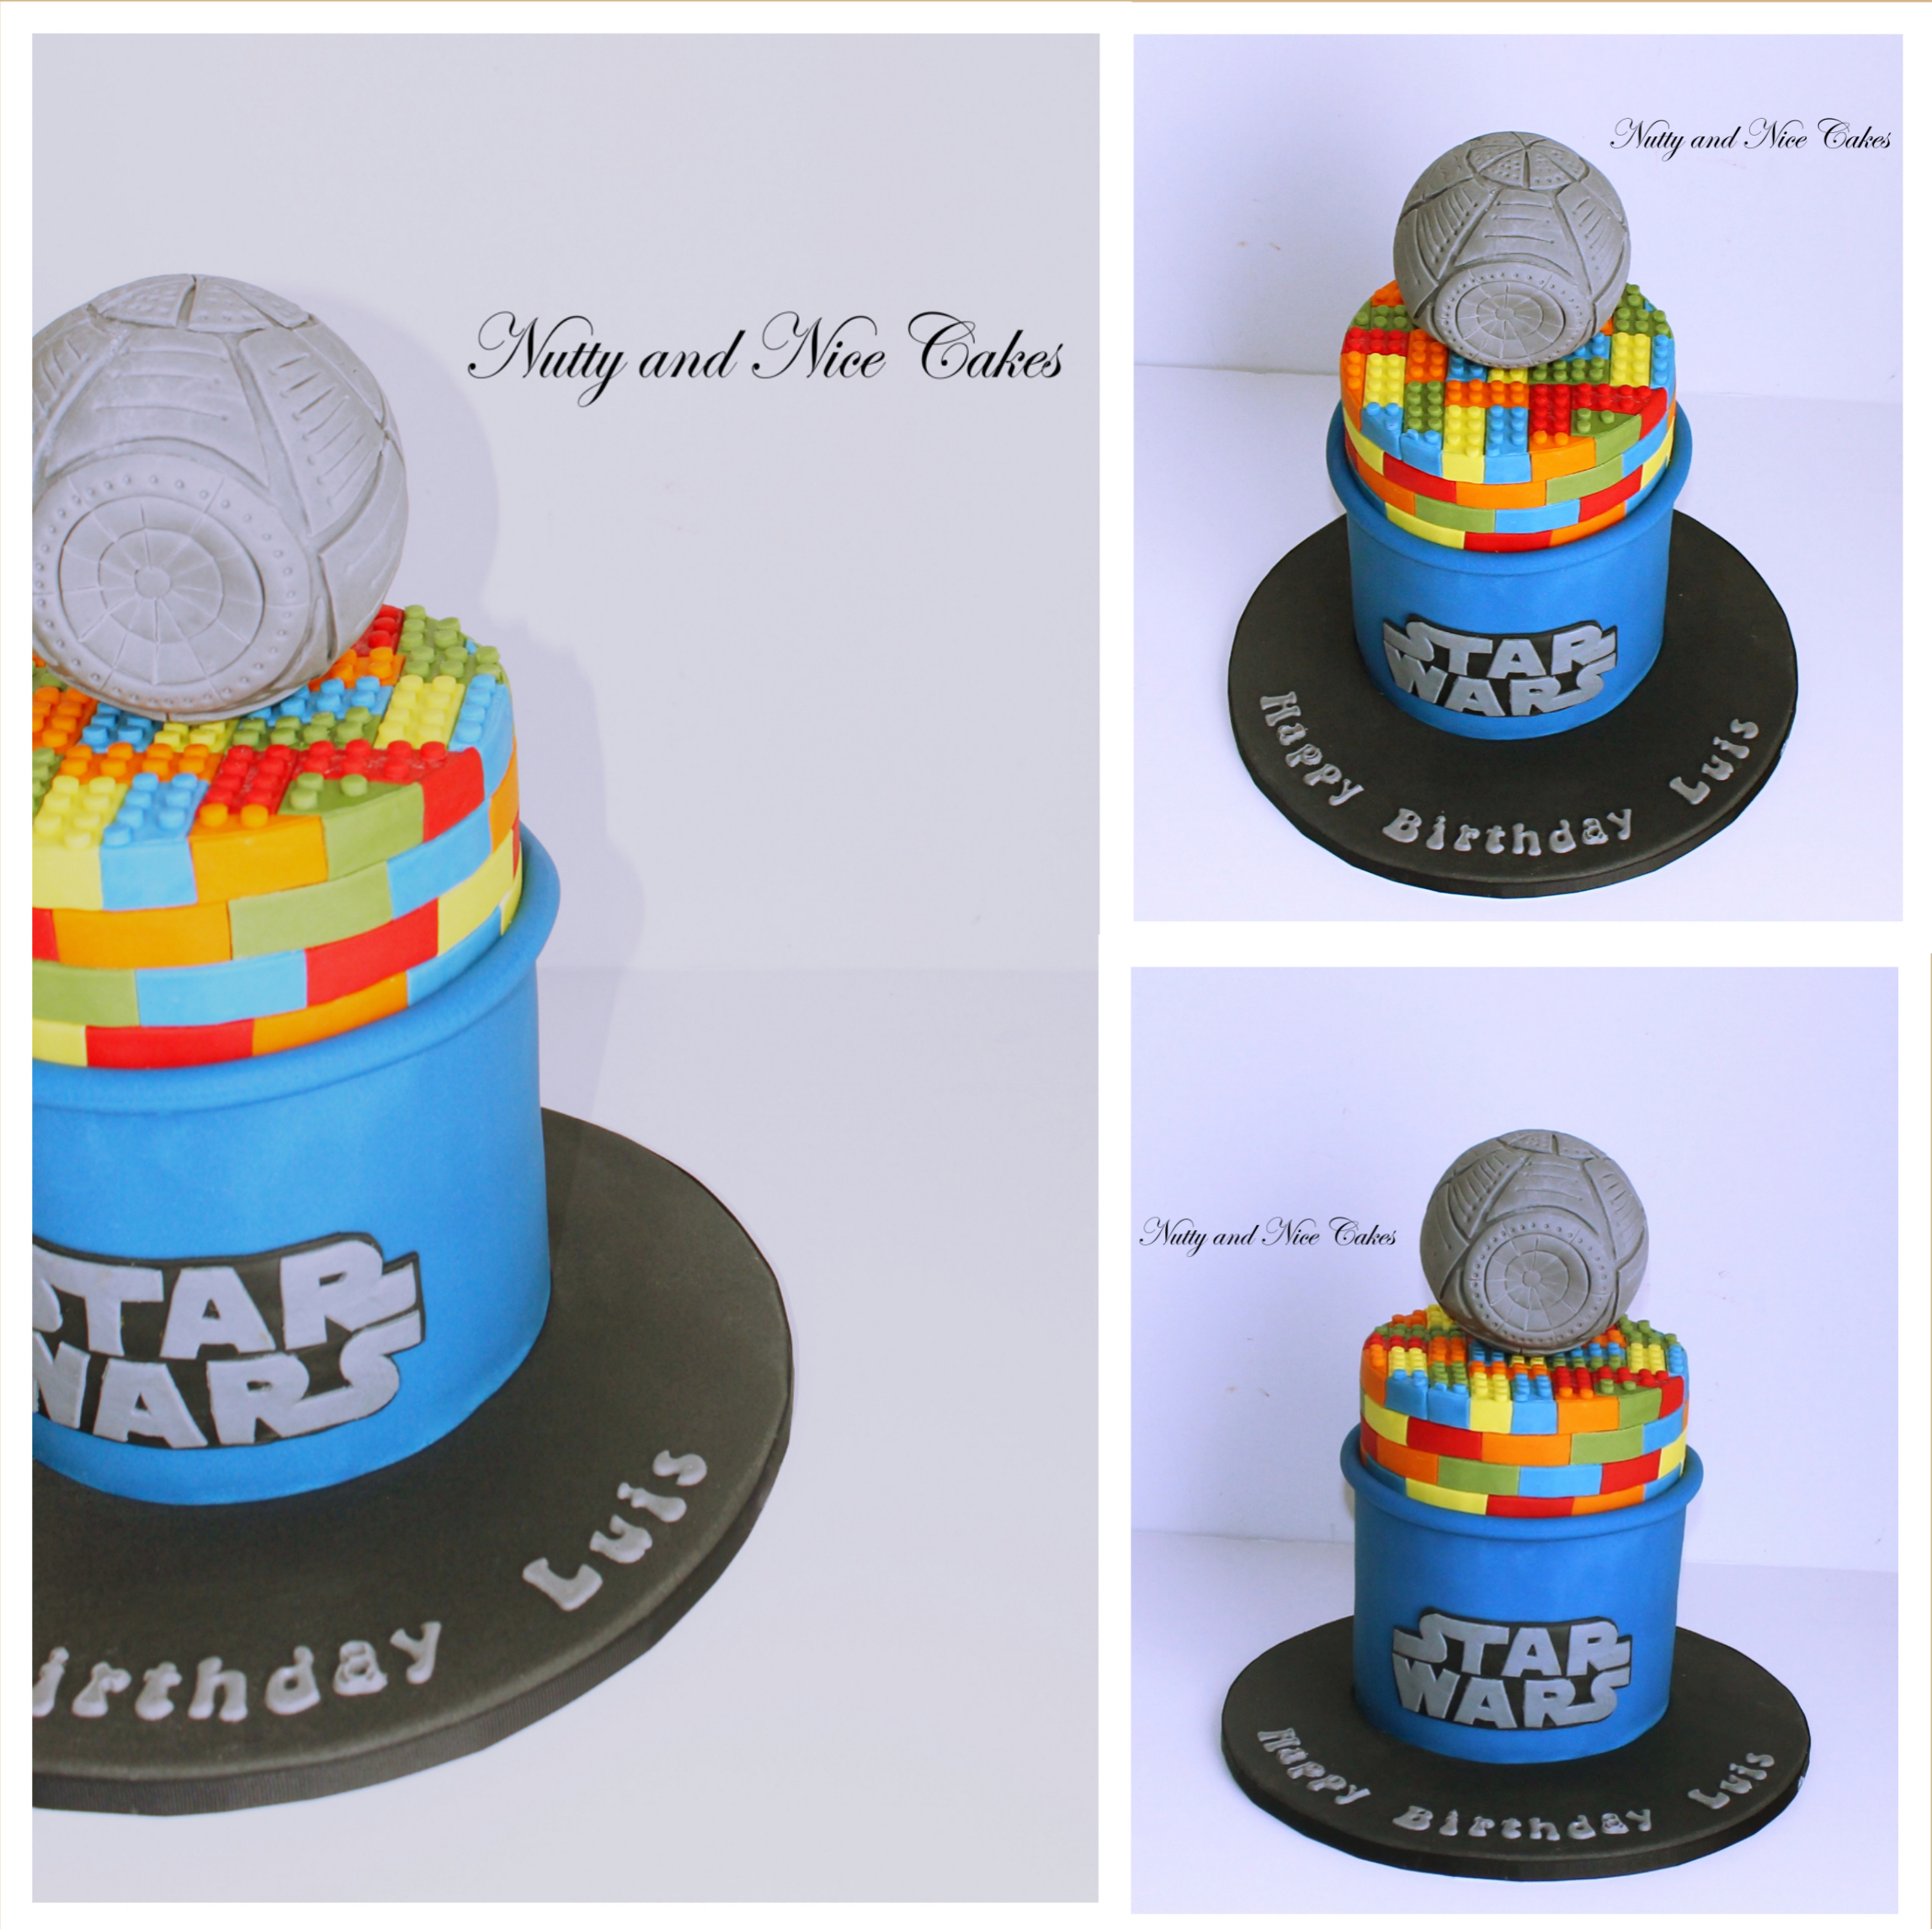 Lego Star Wars Cake1_Fotor_Collage_Fotor